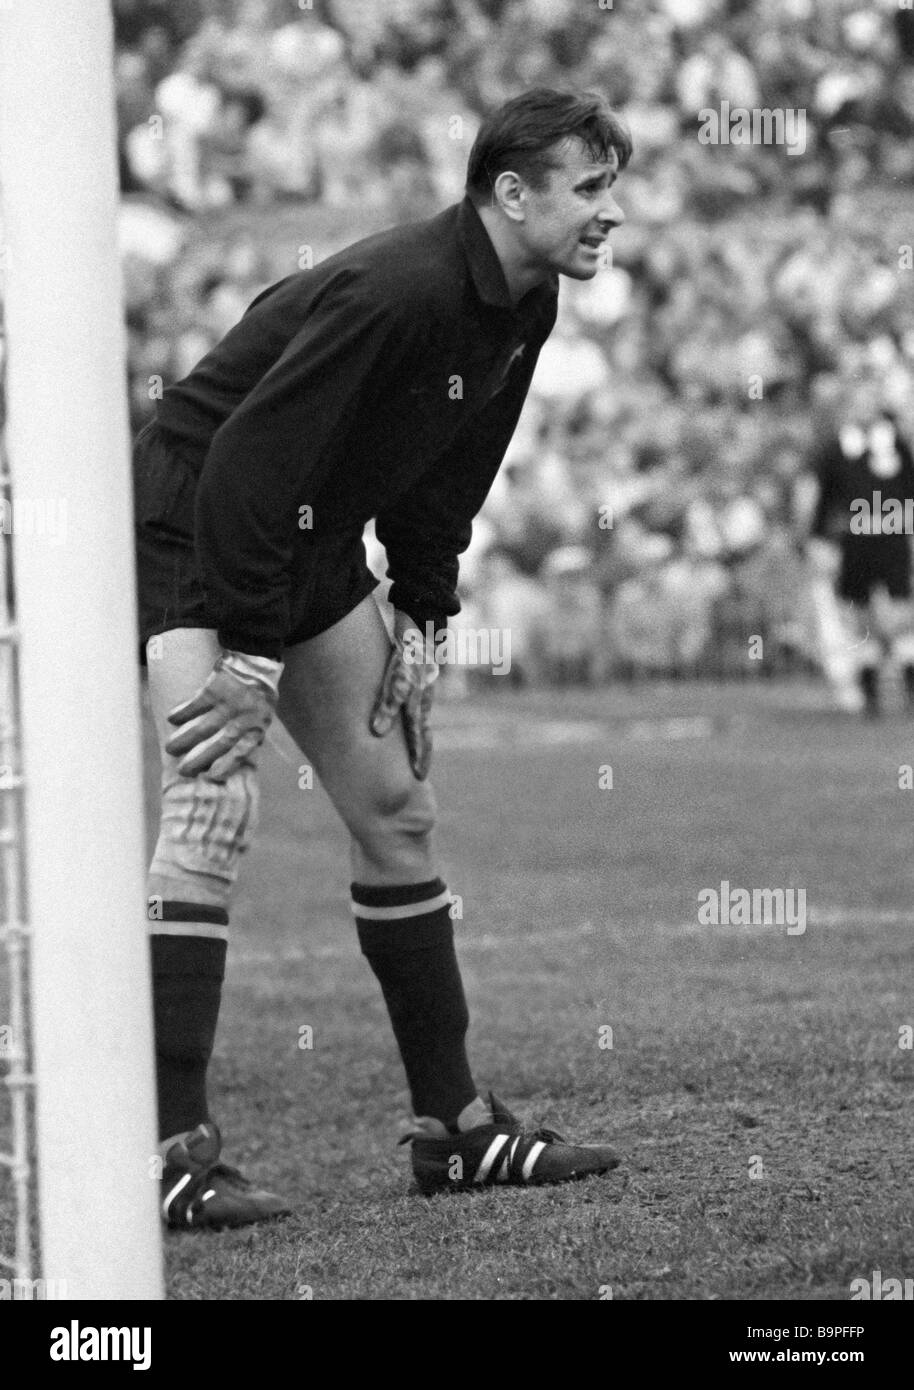 Goalkeeper Lev Yashin of Dynamo Moscow and U S S R national soccer